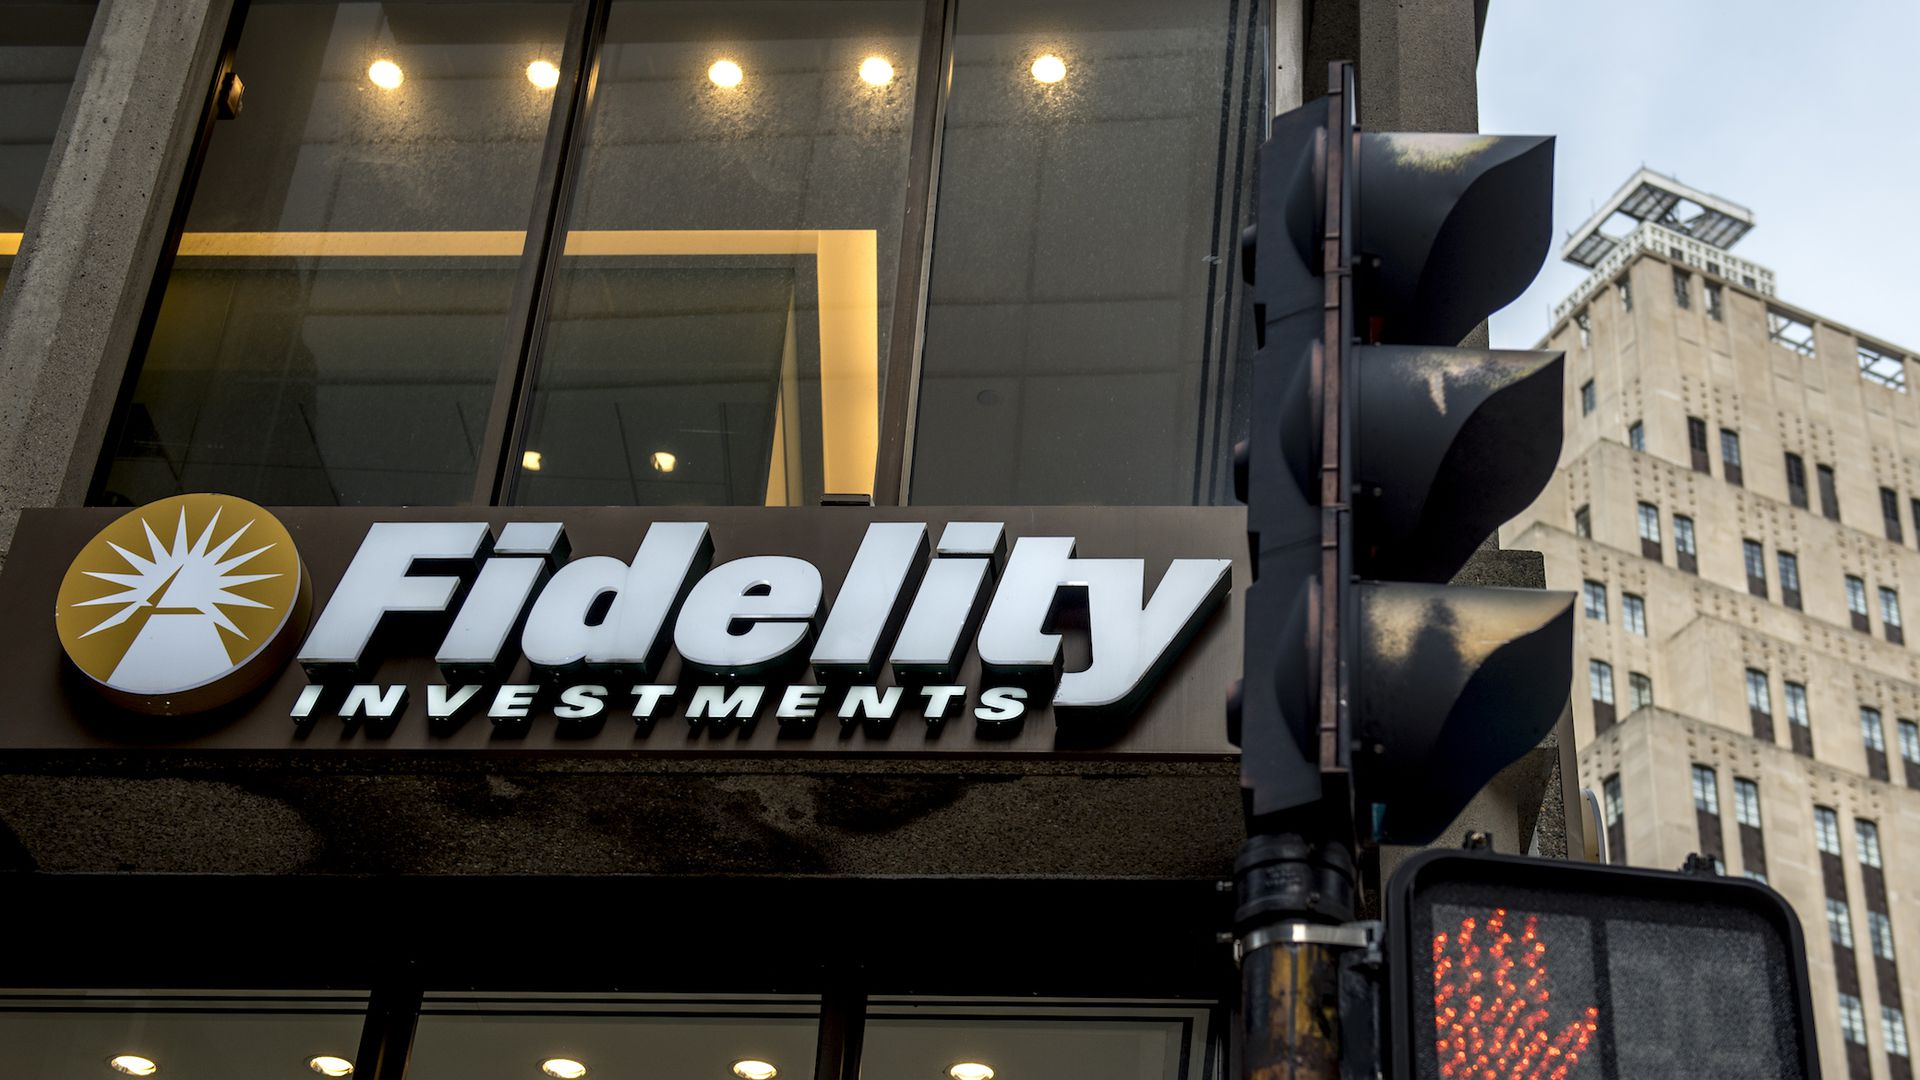 Photo of Fidelity Investments building sign.